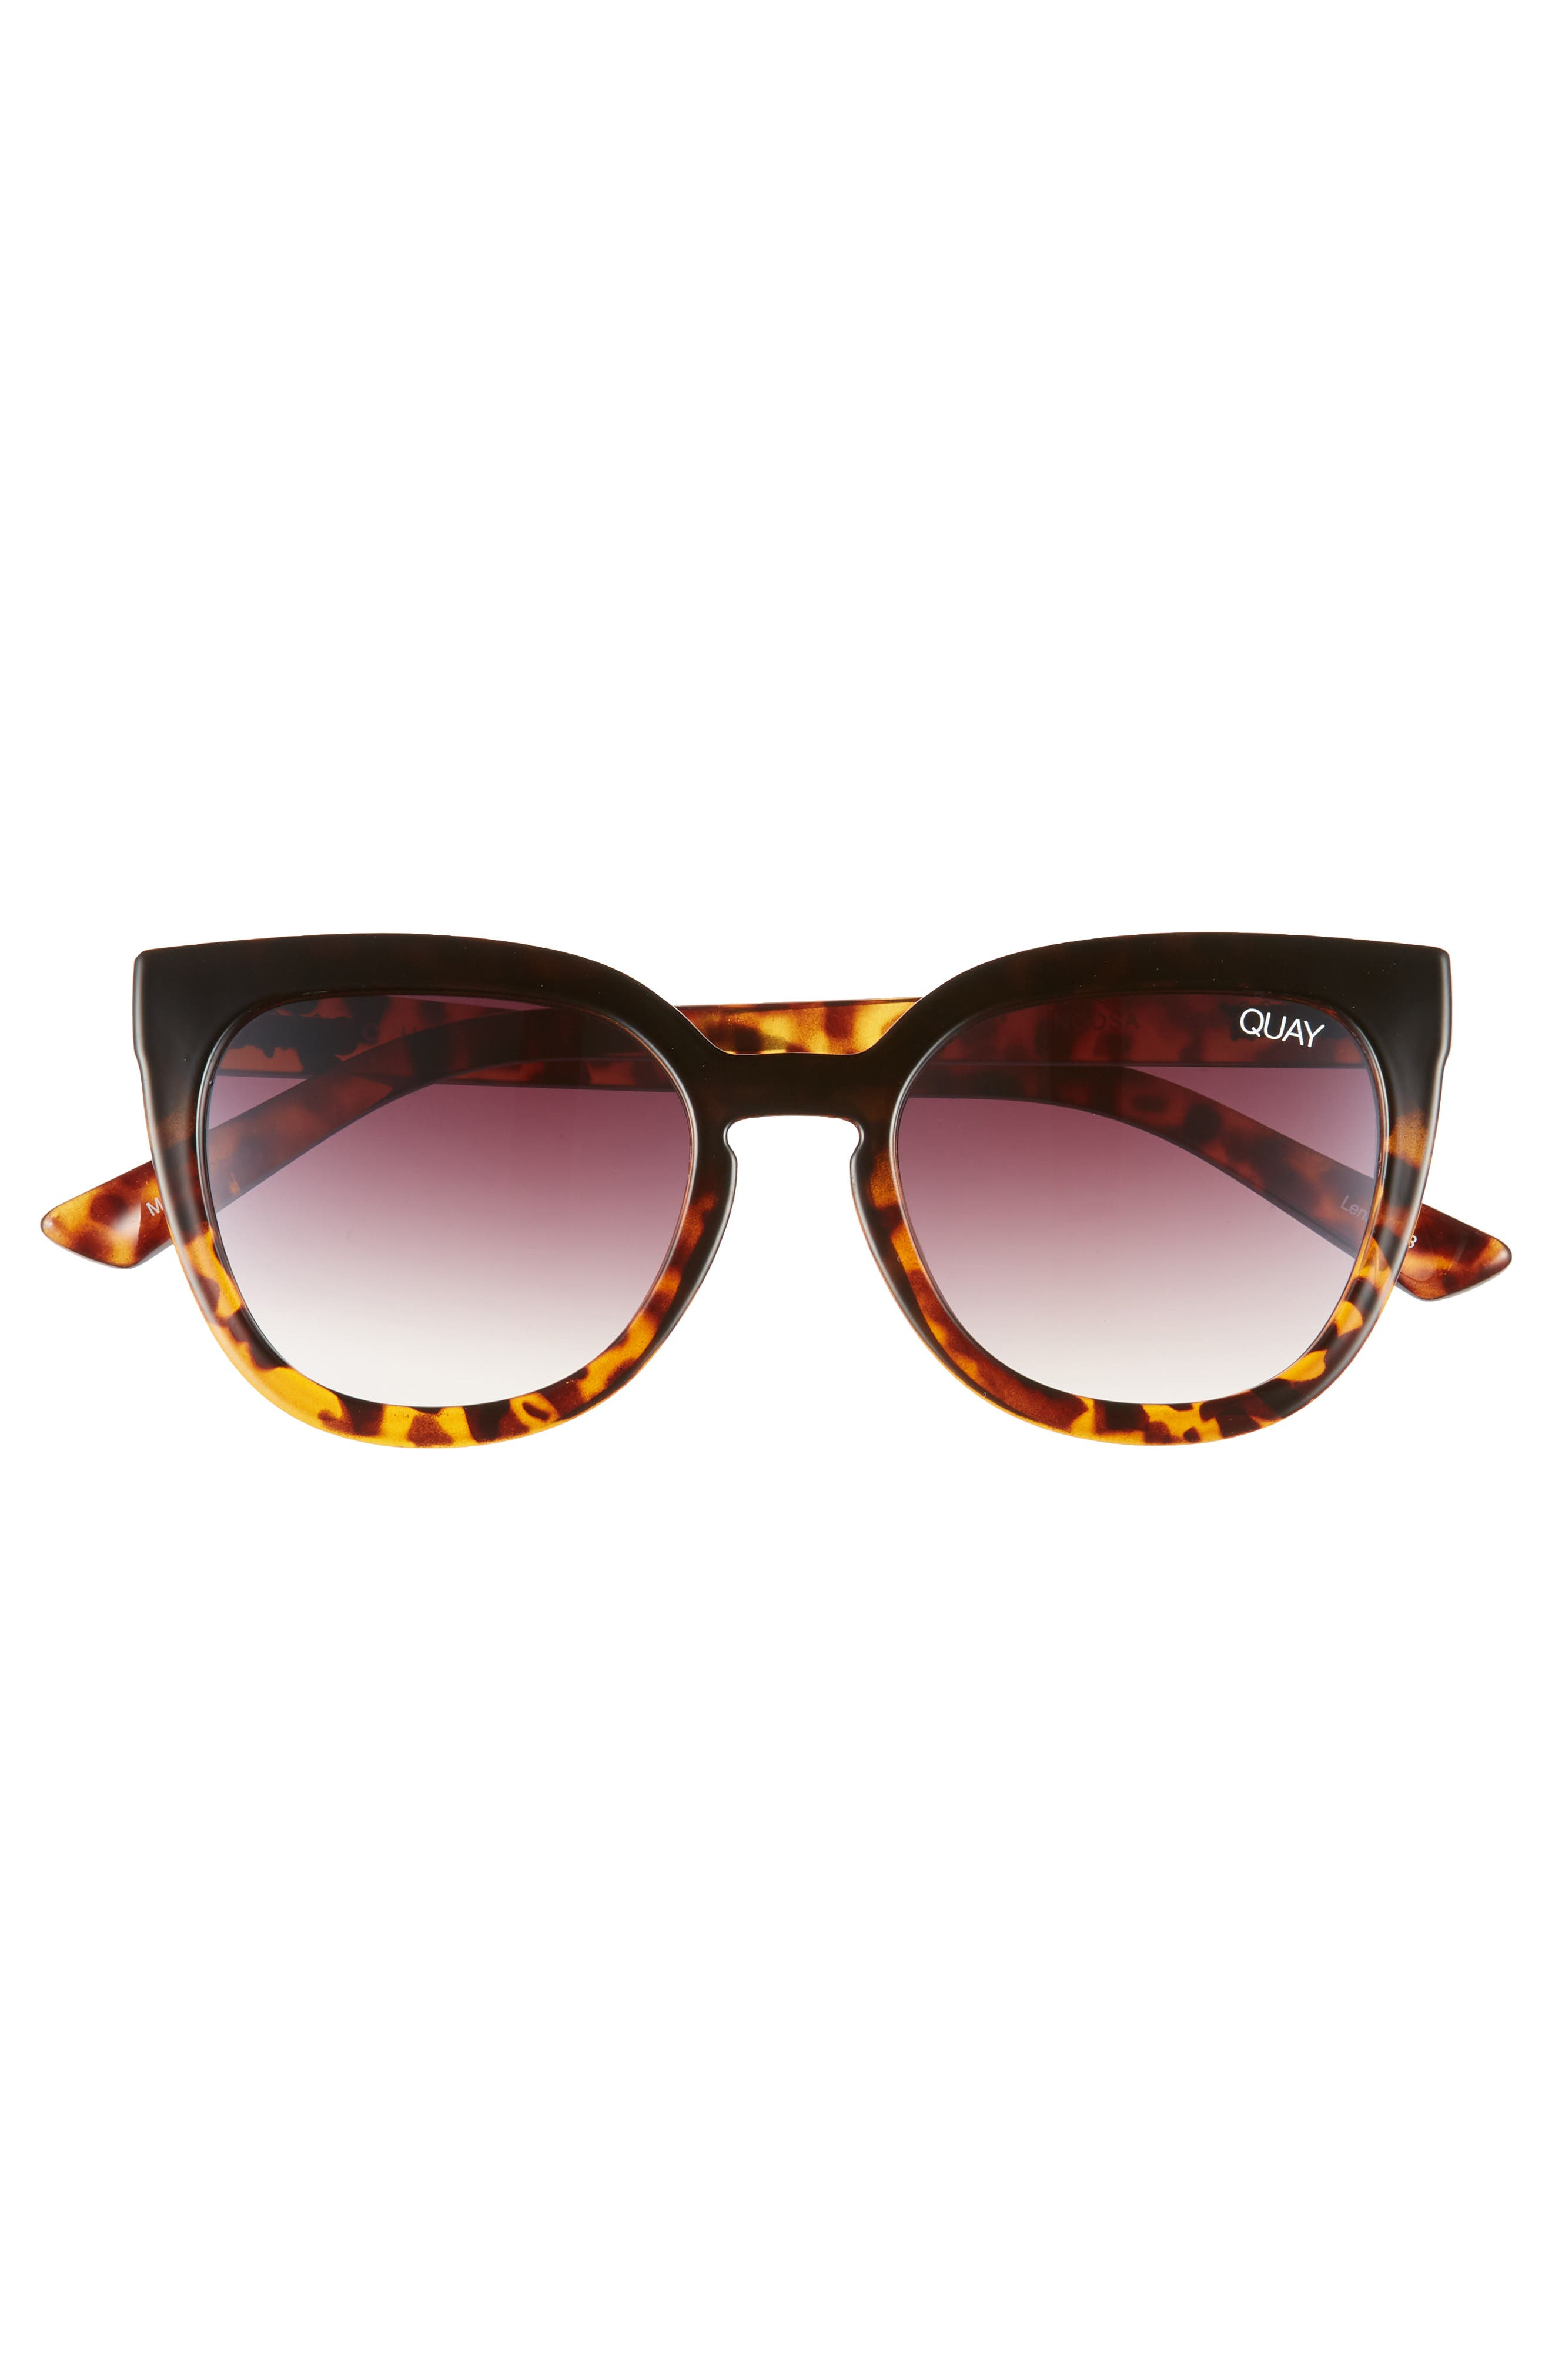 Noosa 50mm Square Sunglasses,                             Alternate thumbnail 3, color,                             BLACK TO TORT / BROWN FADE